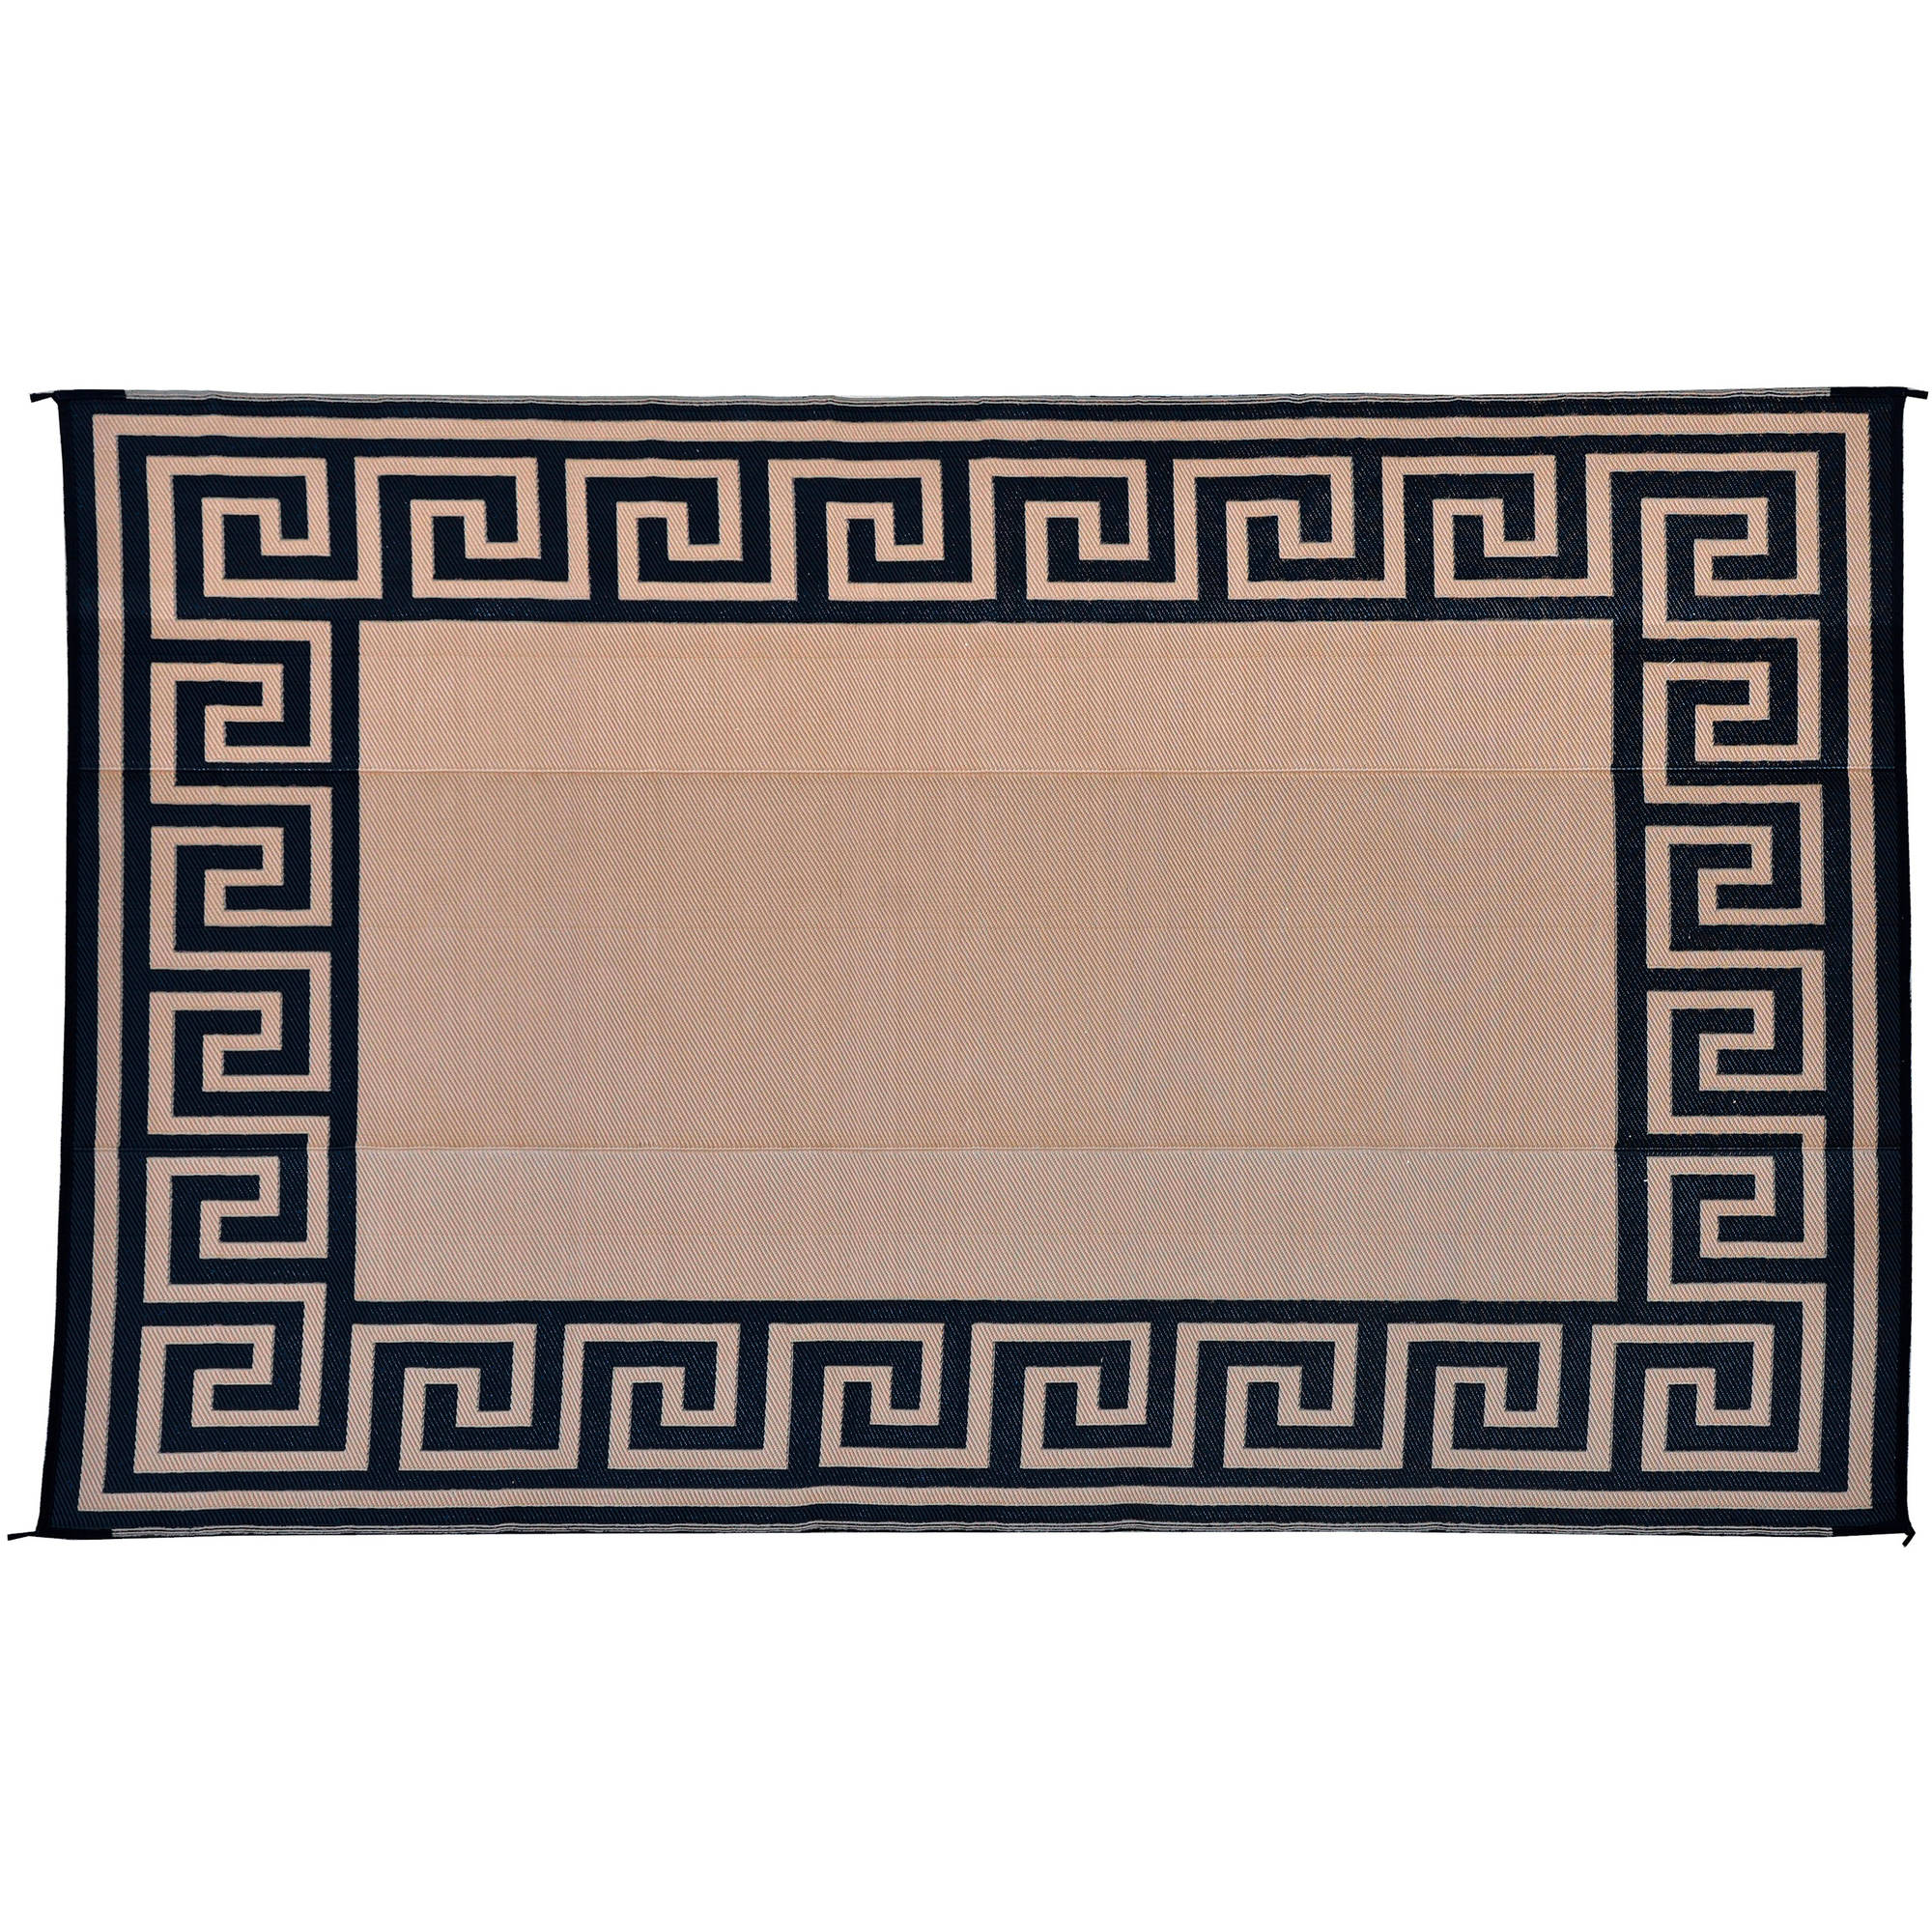 outdoor mats ideas mad decorators plastic clearance sale home area polypropylene patio rugs stupendous rug target